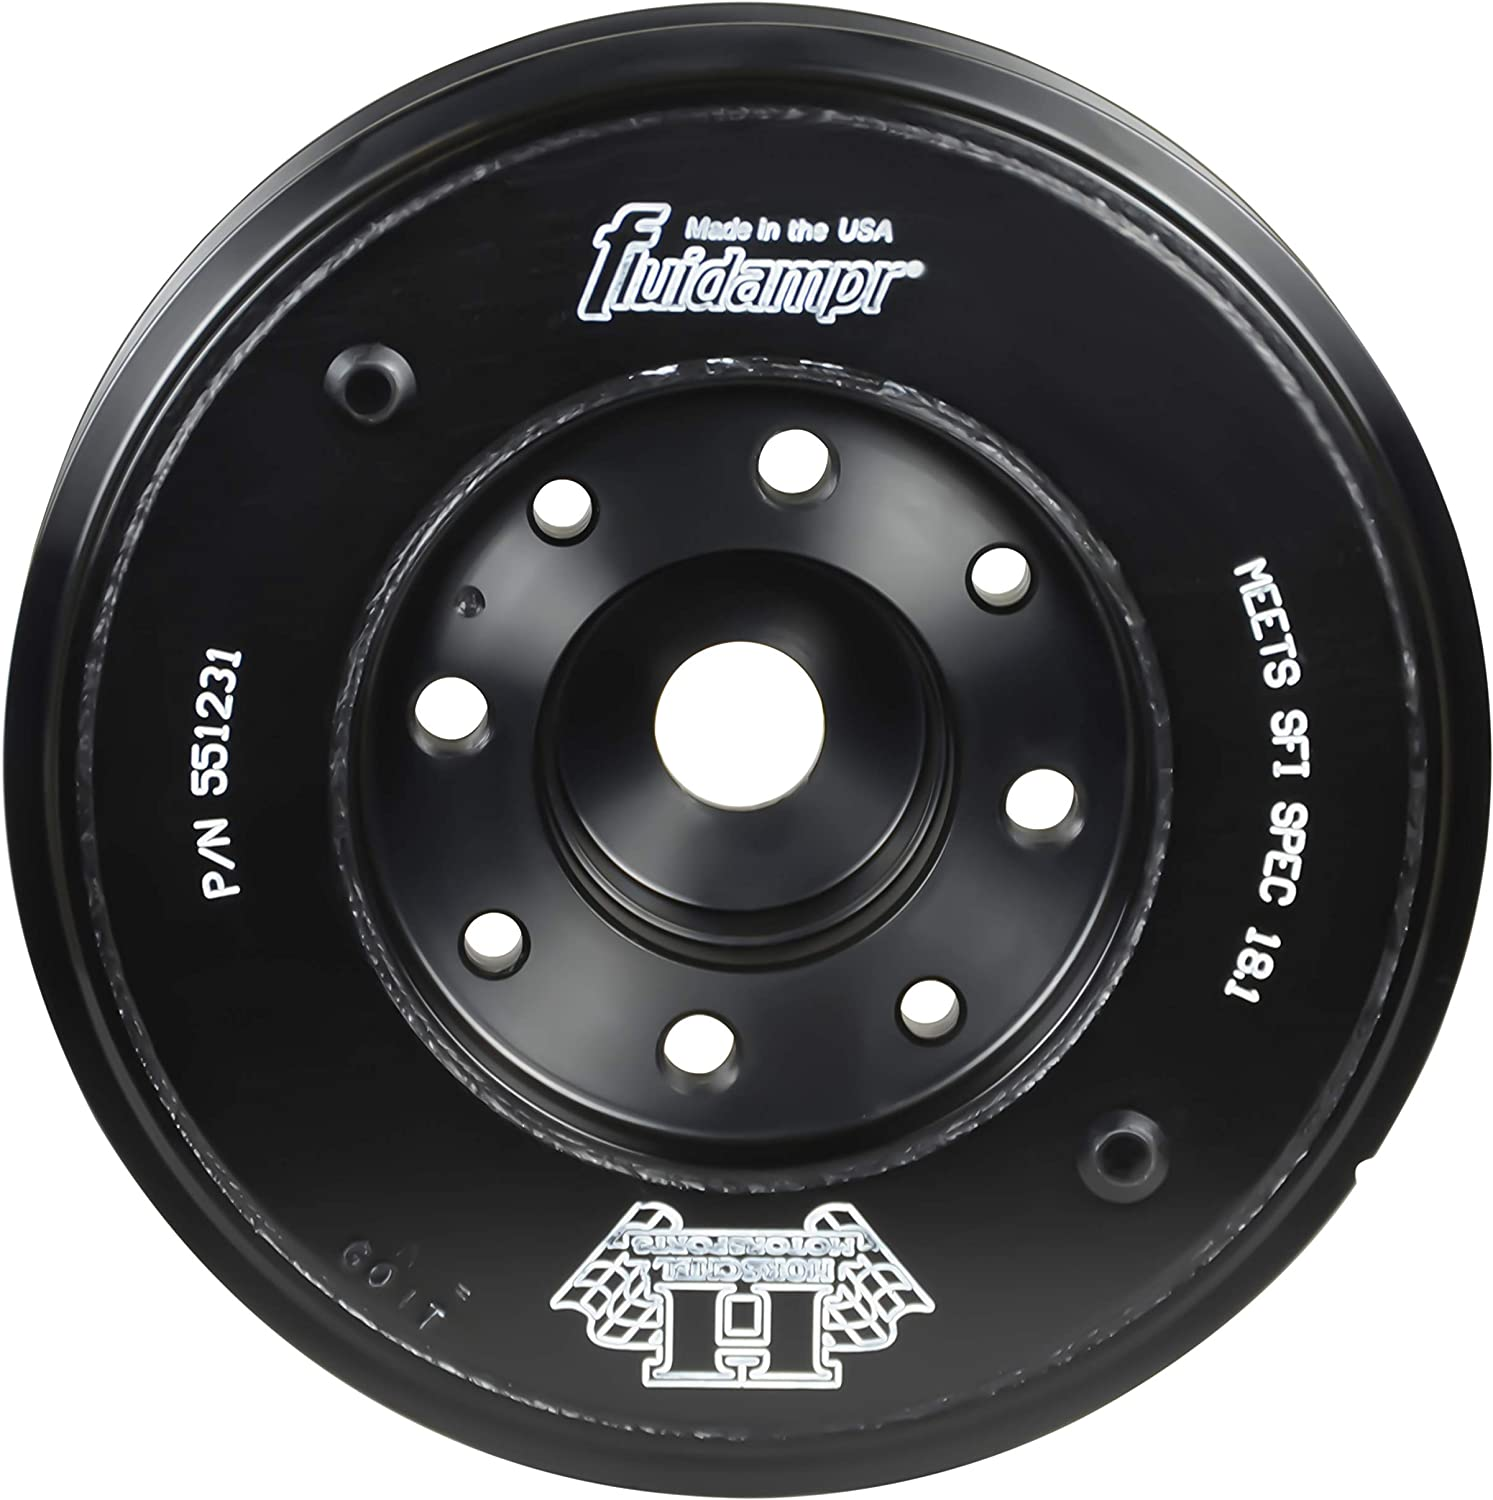 Fluidampr 551231 Harmonic Damper 67% Bombing free shipping OFF of fixed price